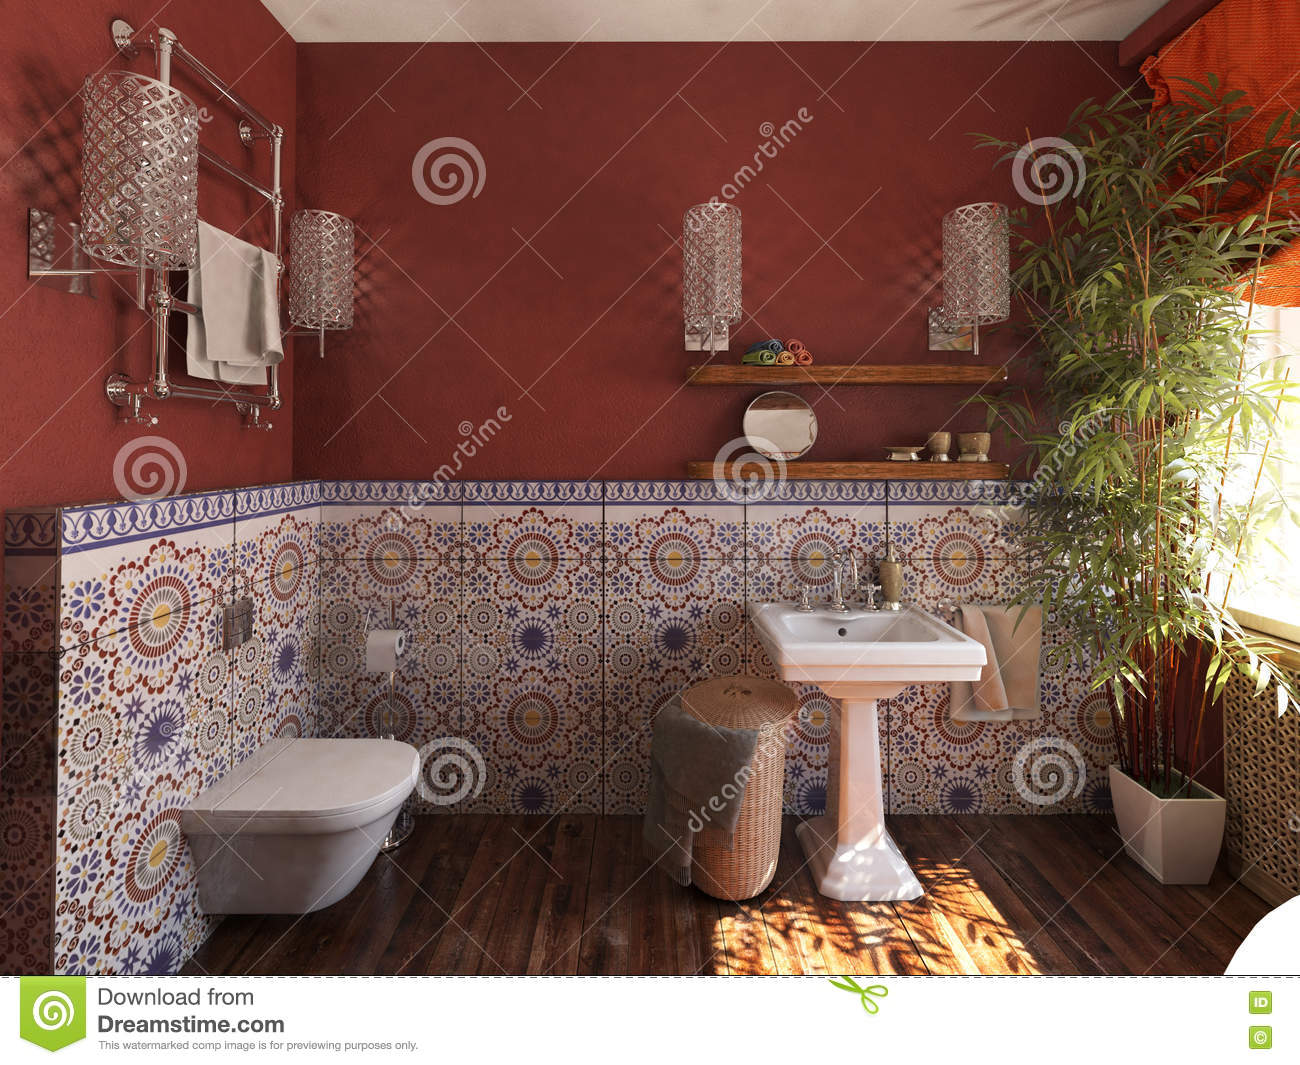 fascinating moroccan style bathroom | The Interior Of Bathroom In The Moroccan Style Stock Photo ...